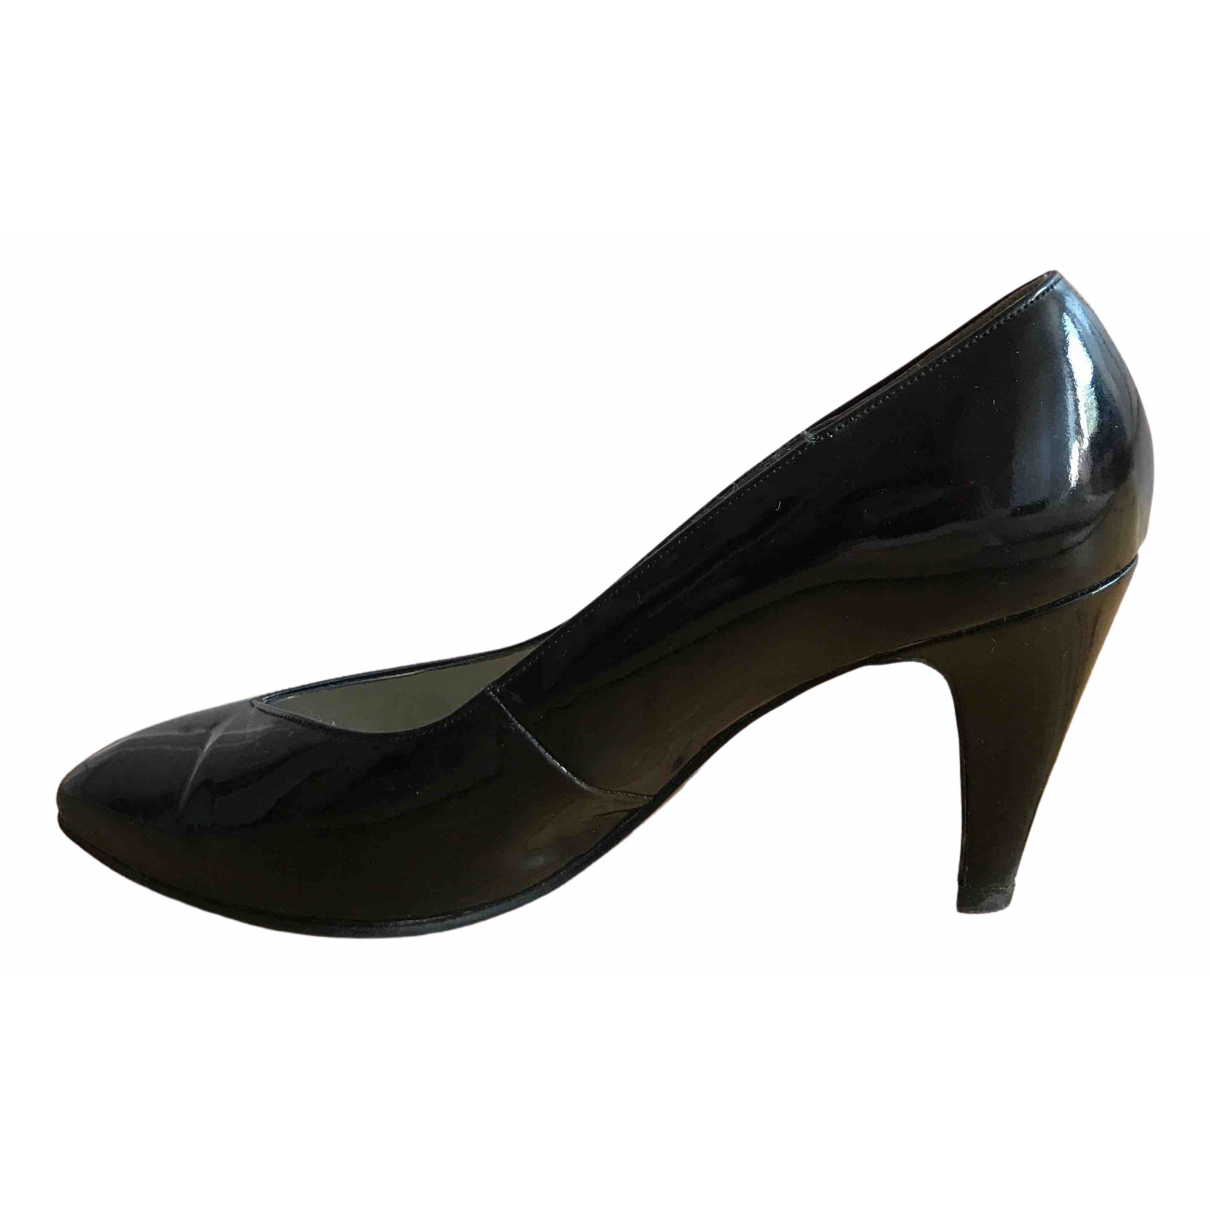 Bally \N Black Patent leather Heels for Women 5.5 UK